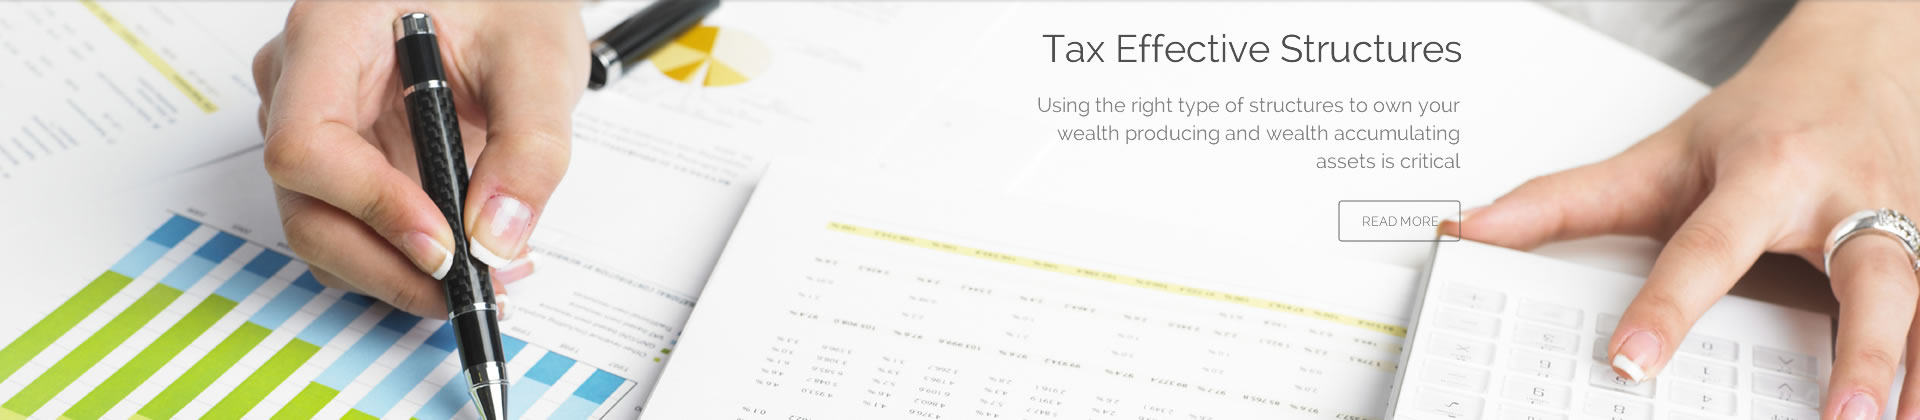 Tax Effective Structures